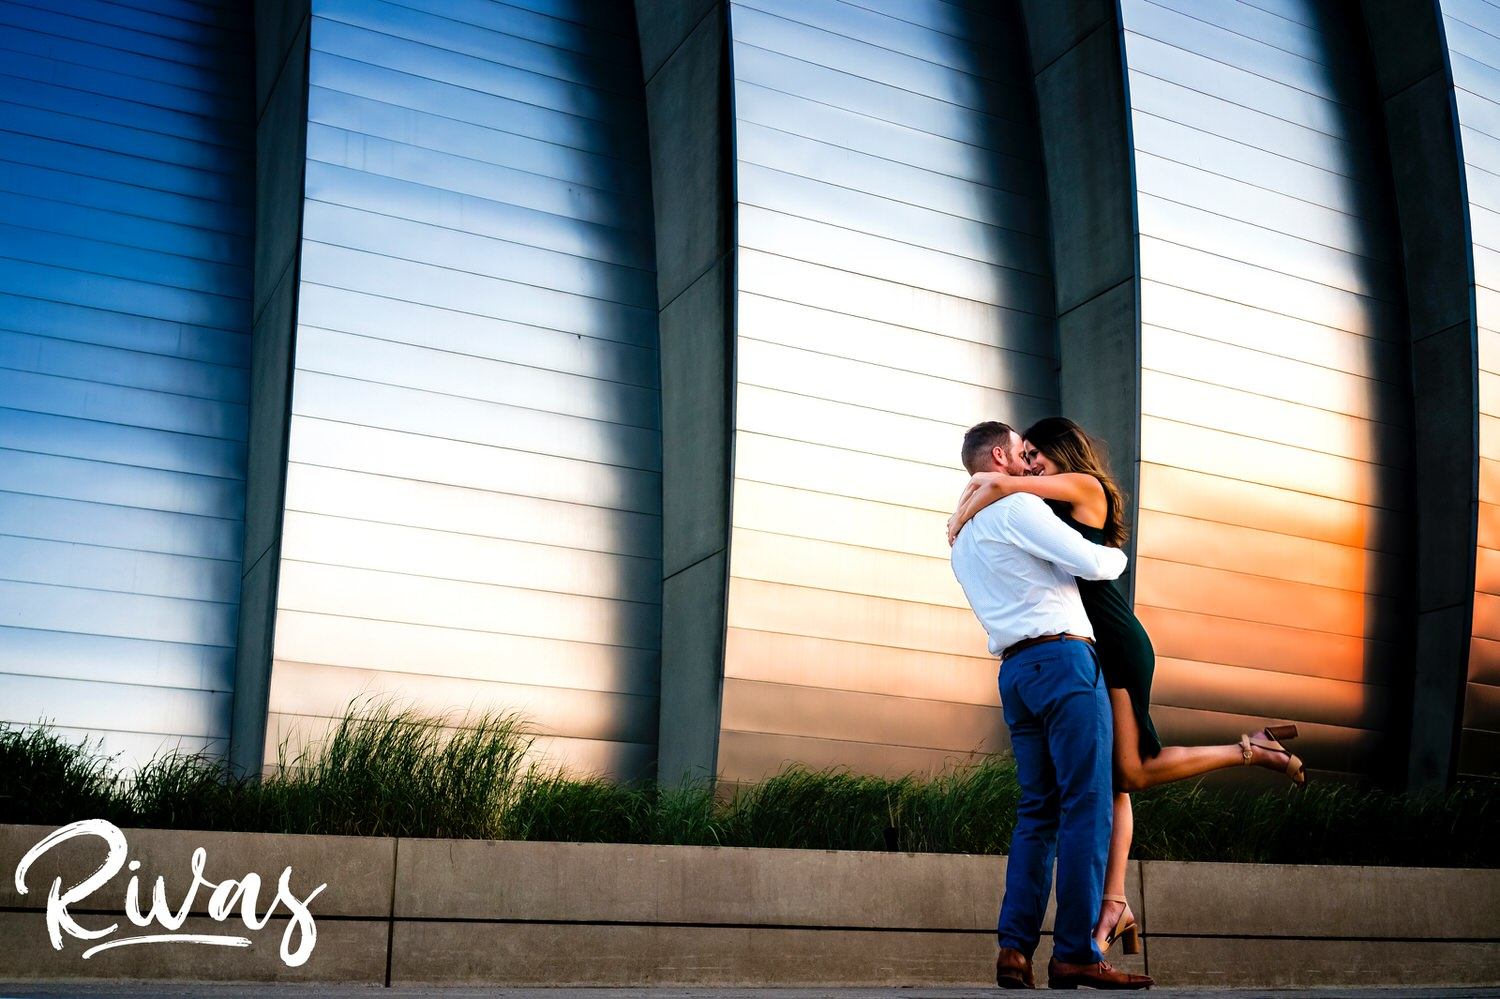 A genuine, carefree, candid engagement picture taken at sunset at the Kauffman Center for the Performing Arts during a summer engagement session in Kansas City.